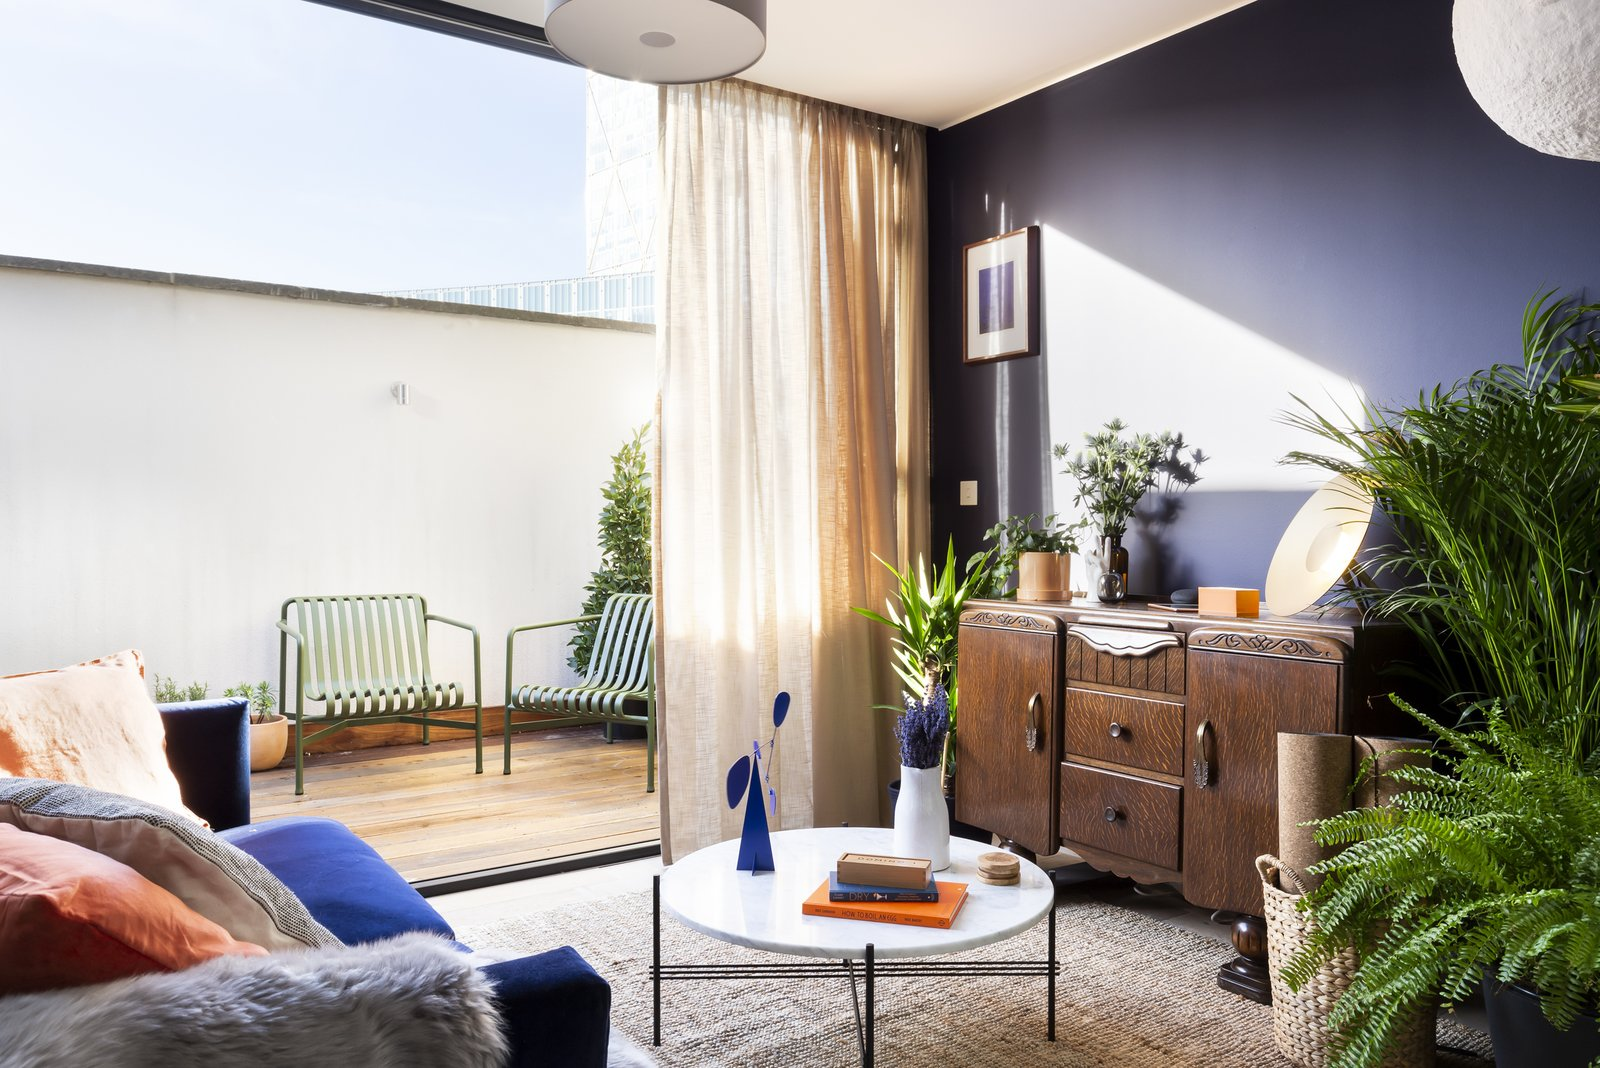 Zed Rooms penthouse